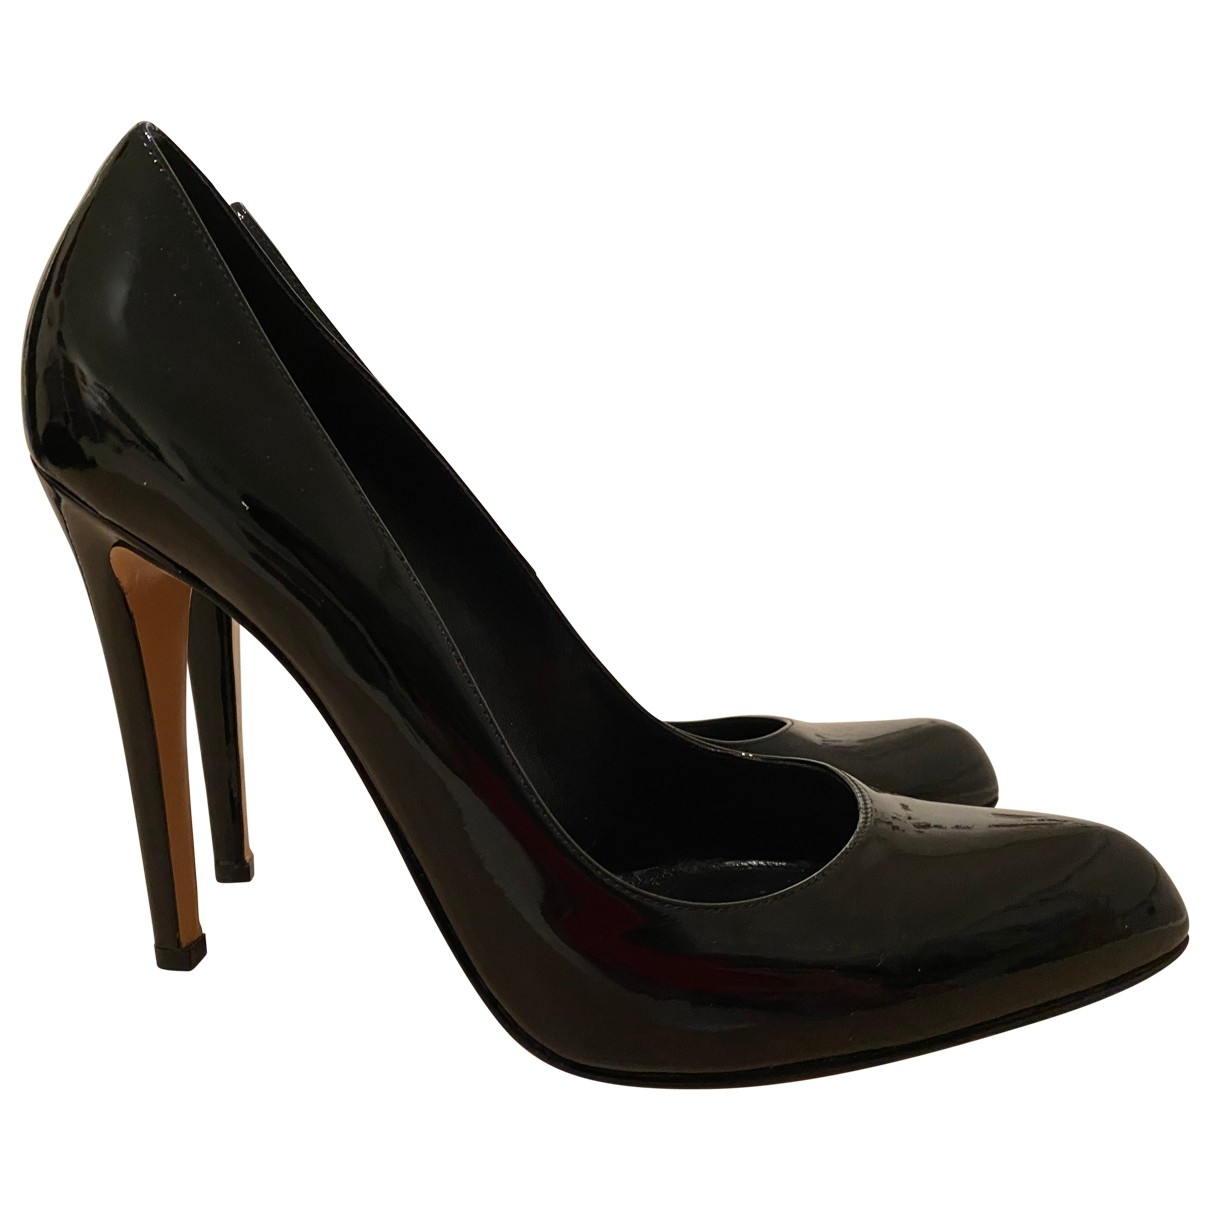 Gianvito Rossi \N Black Patent leather Heels for Women 40 EU